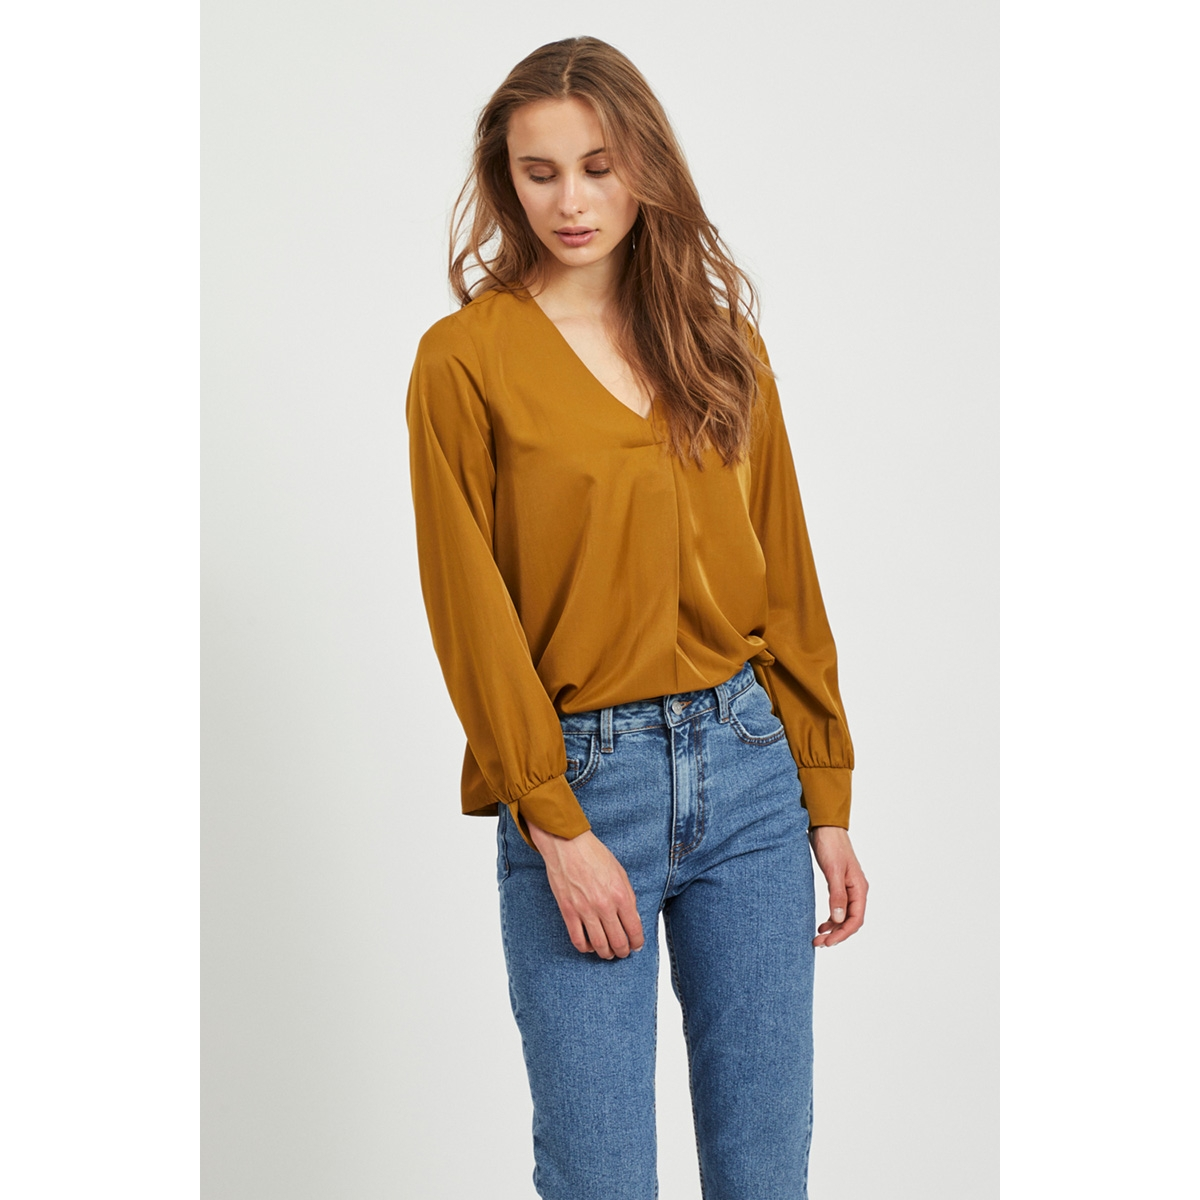 objeileen l/s v-neck top noos 23032114 object blouse tapenade